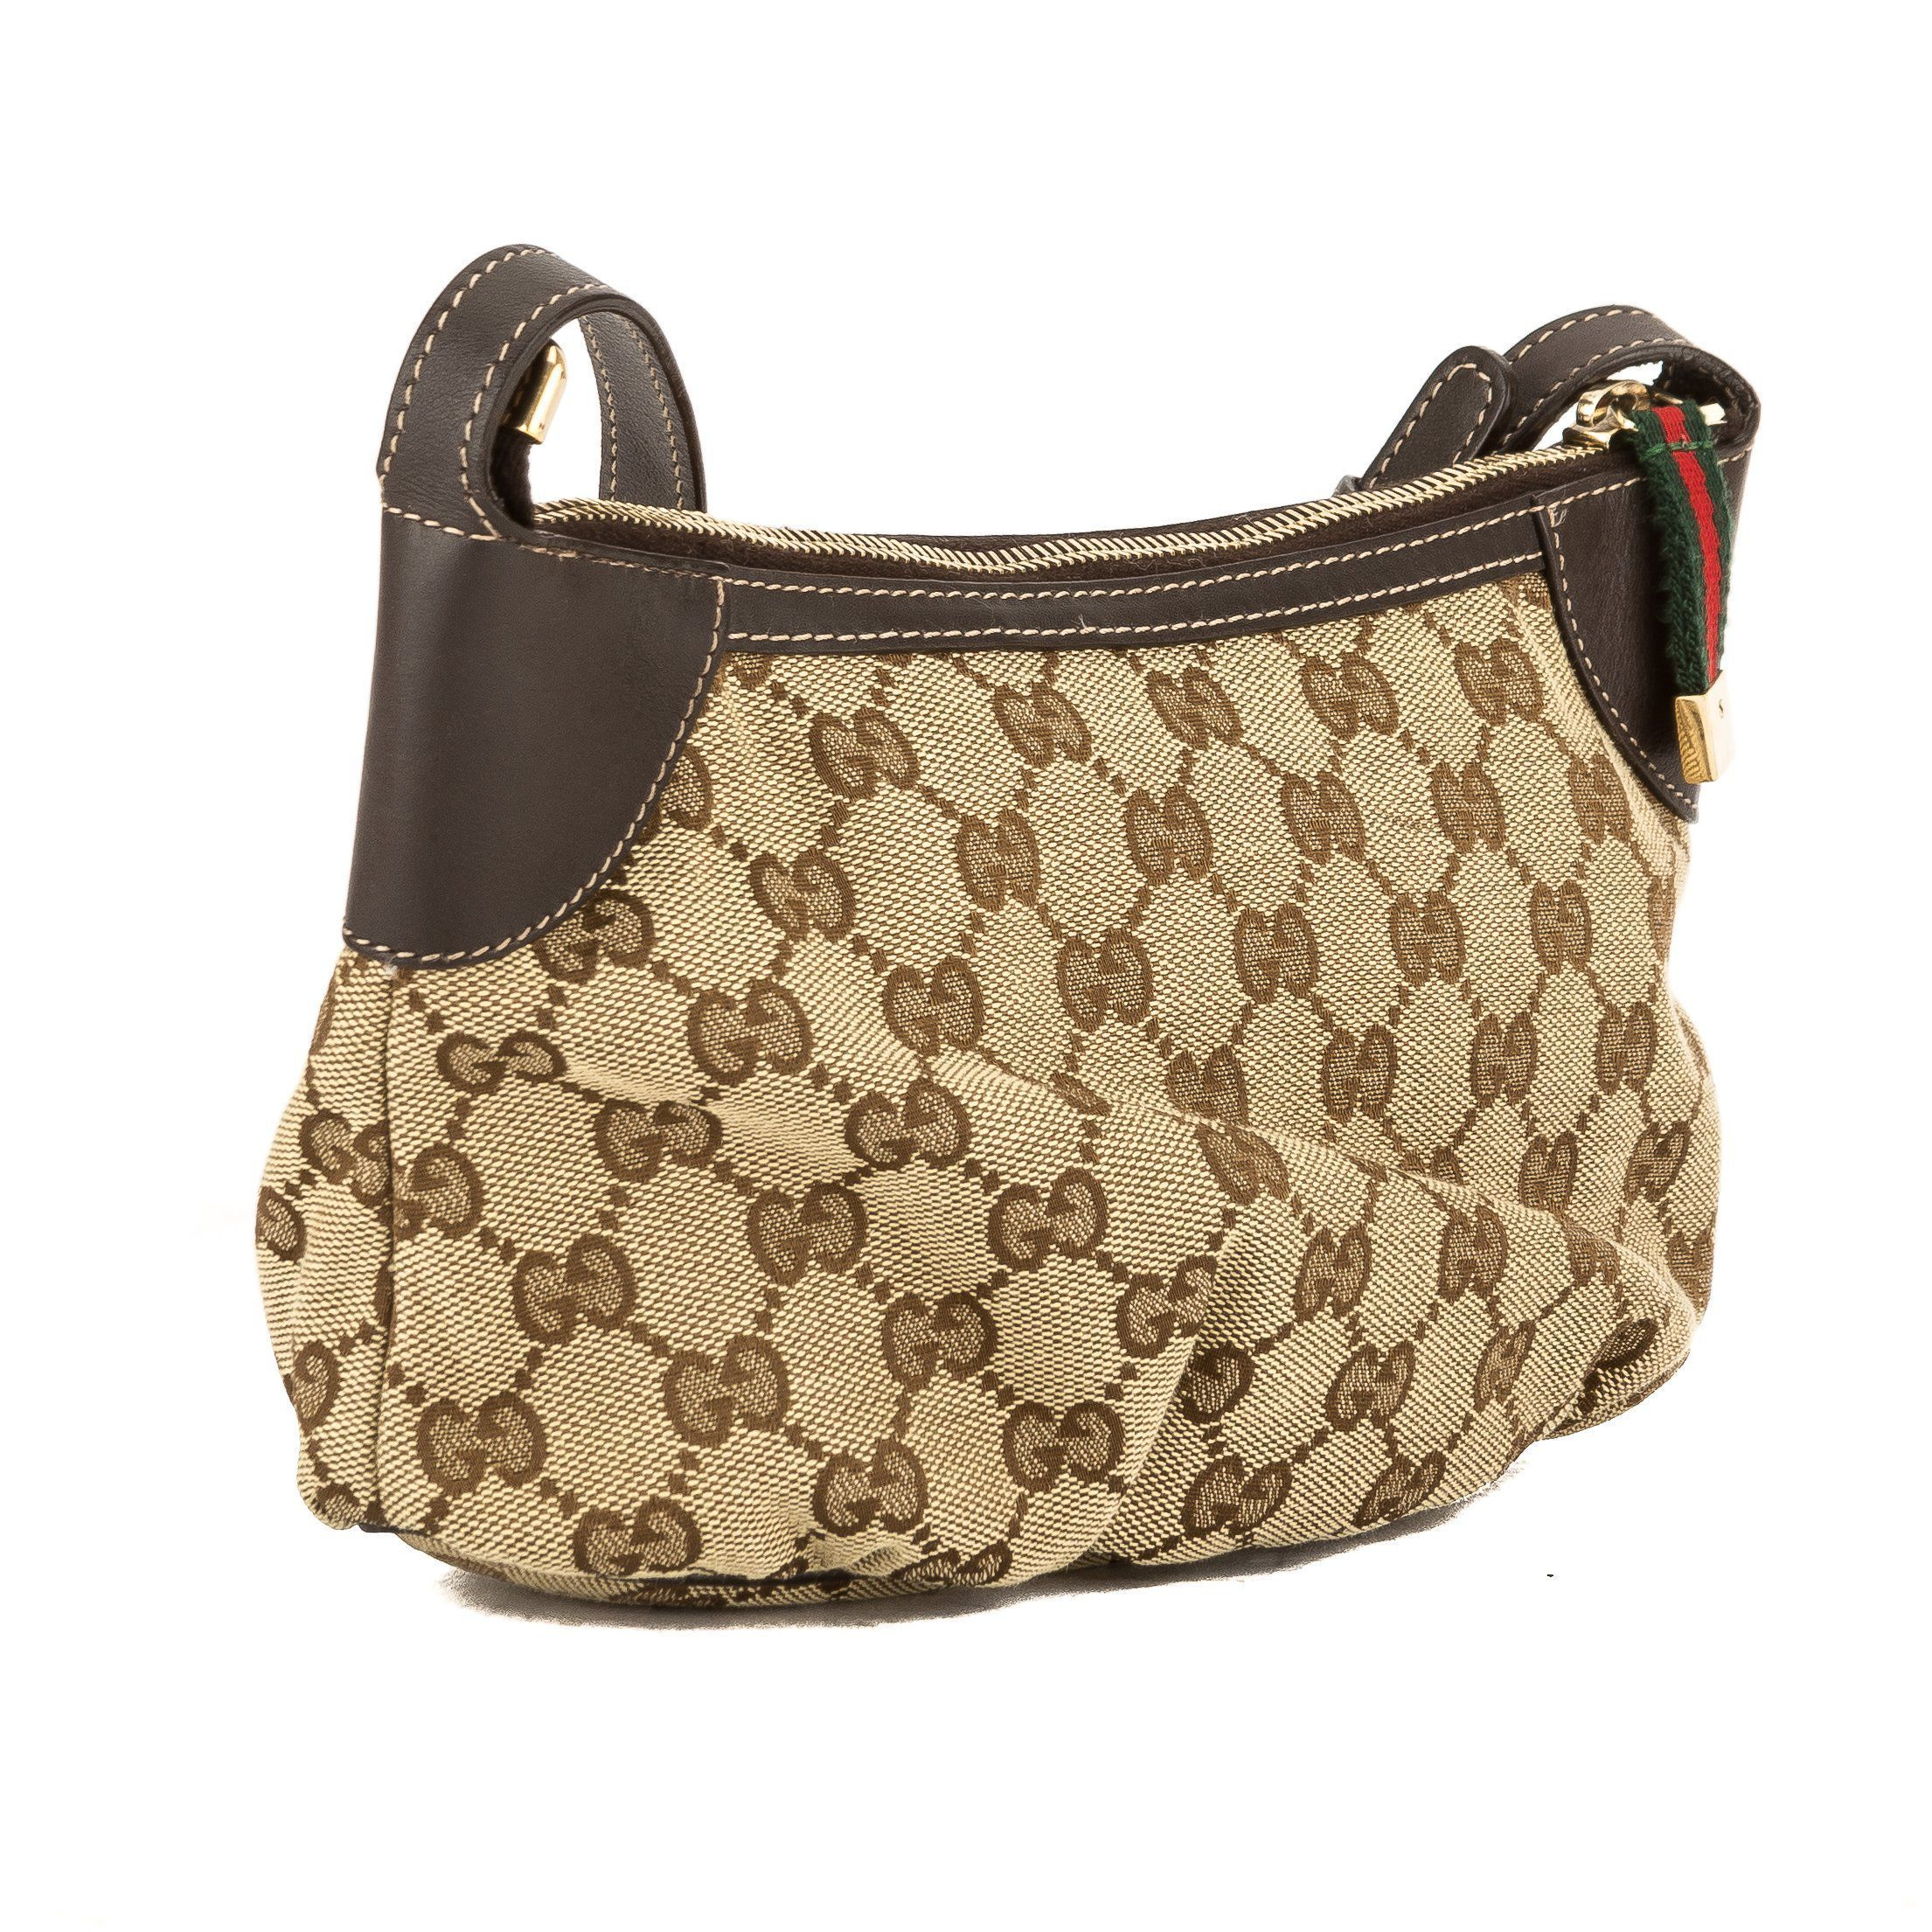 05dc3bb01530 Gucci Brown Leather GG Monogram Canvas Guccisima Pochette Bag (3814009)